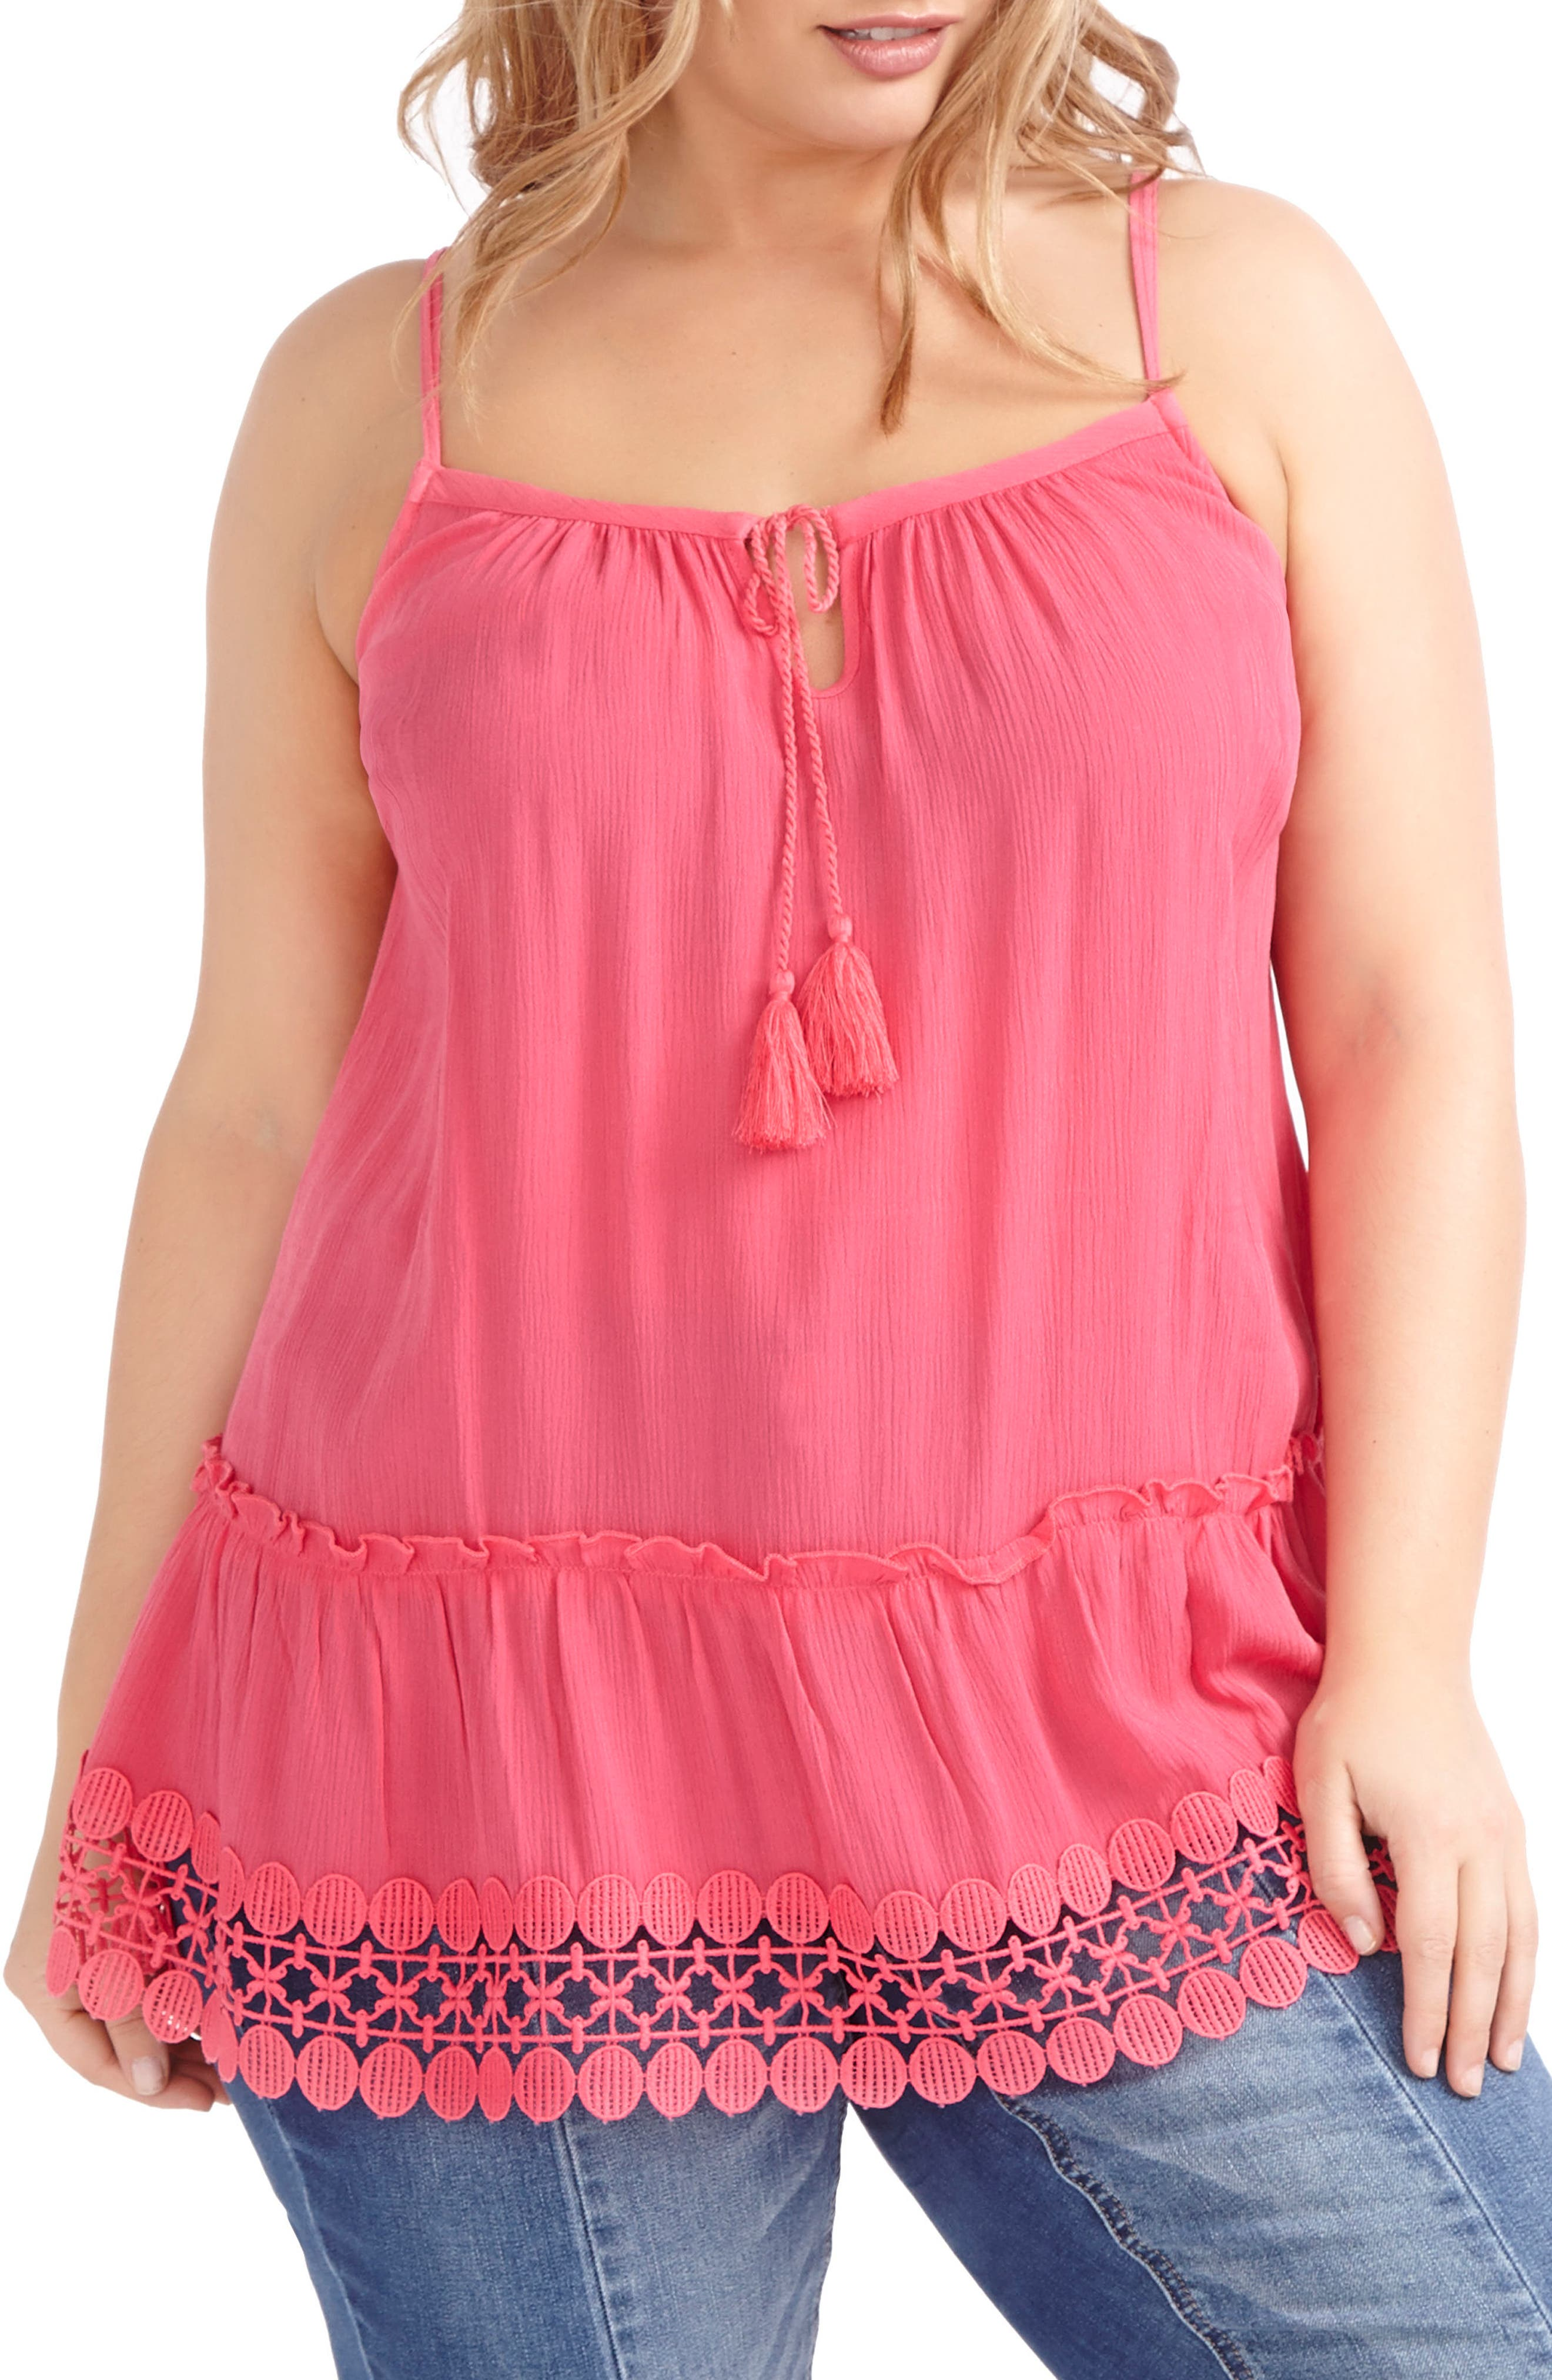 ADDITION ELLE LOVE AND LEGEND Tunic Tank (Plus Size)